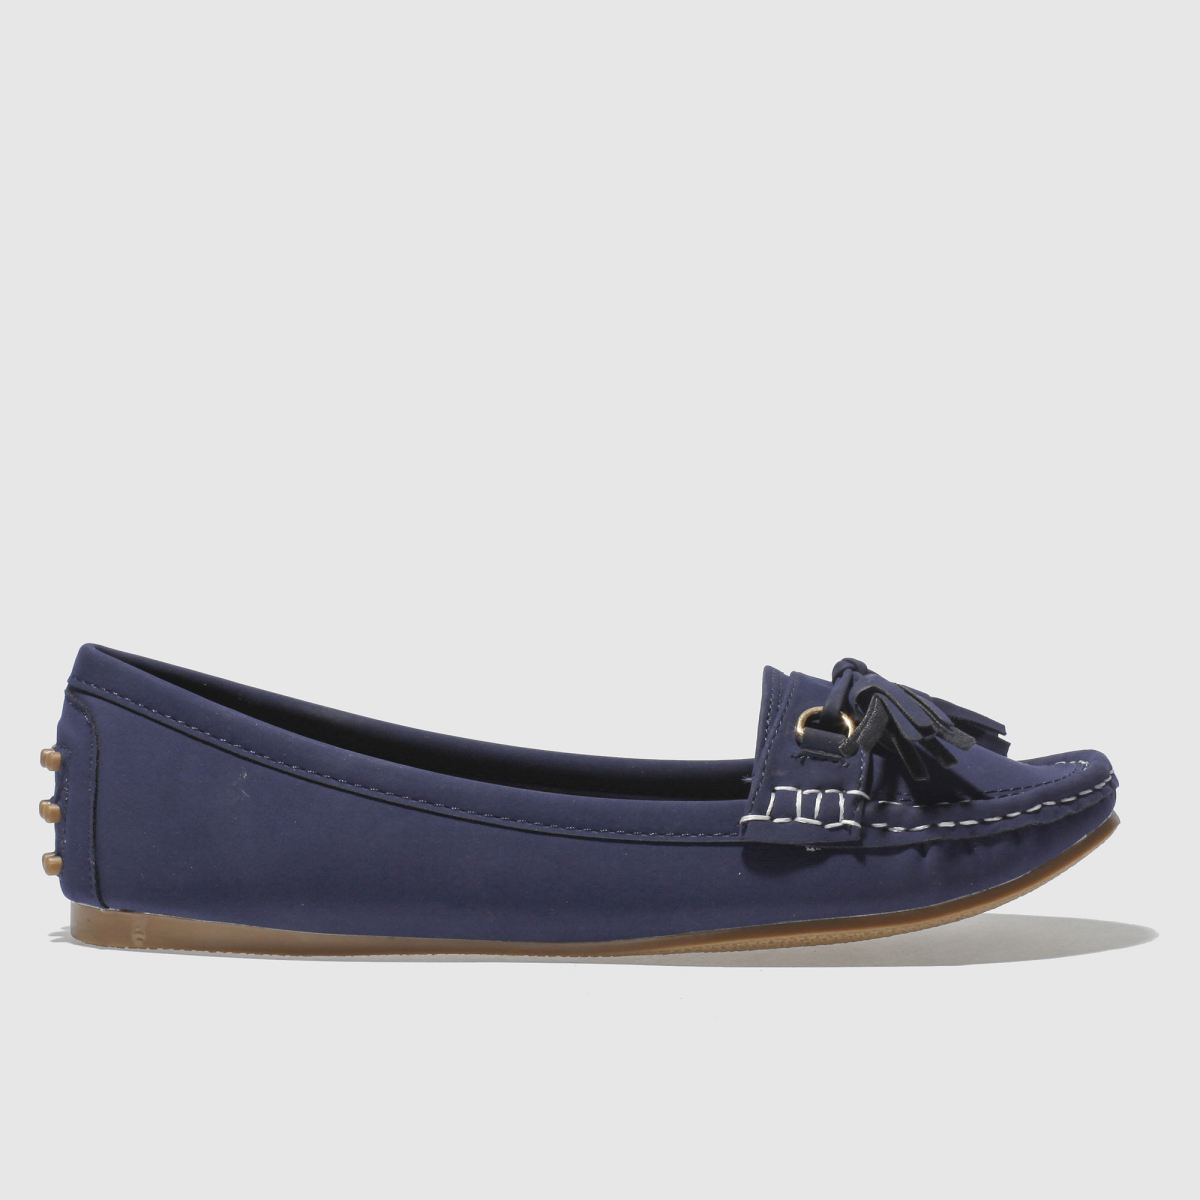 Schuh Navy Preppy Flat Shoes